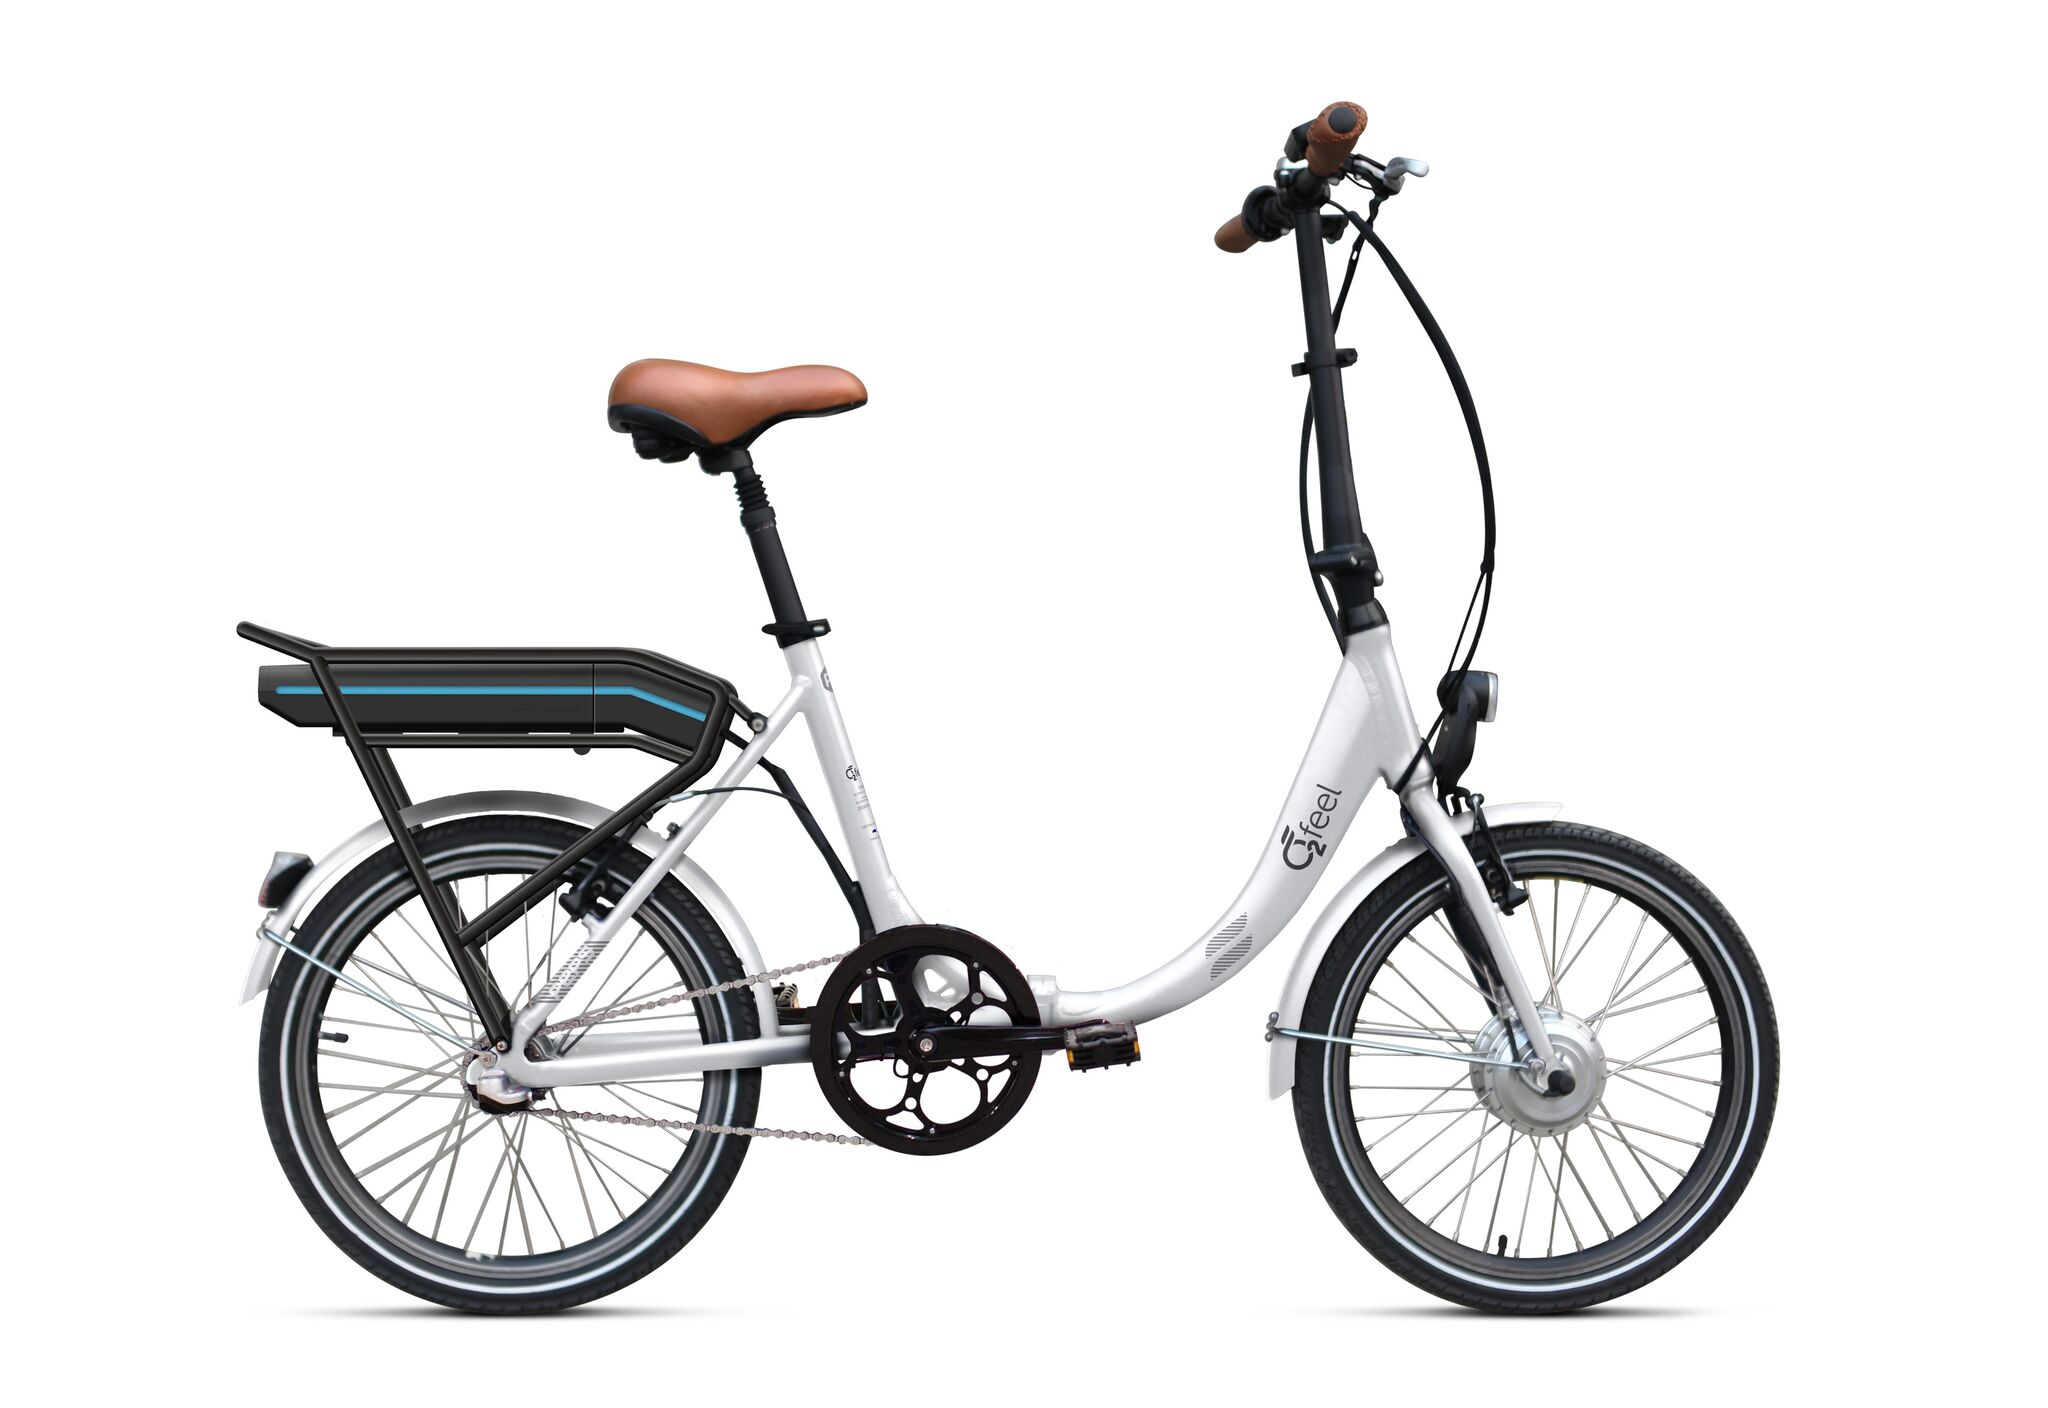 electric folding bike o2feel peps bas n3 o2feel. Black Bedroom Furniture Sets. Home Design Ideas